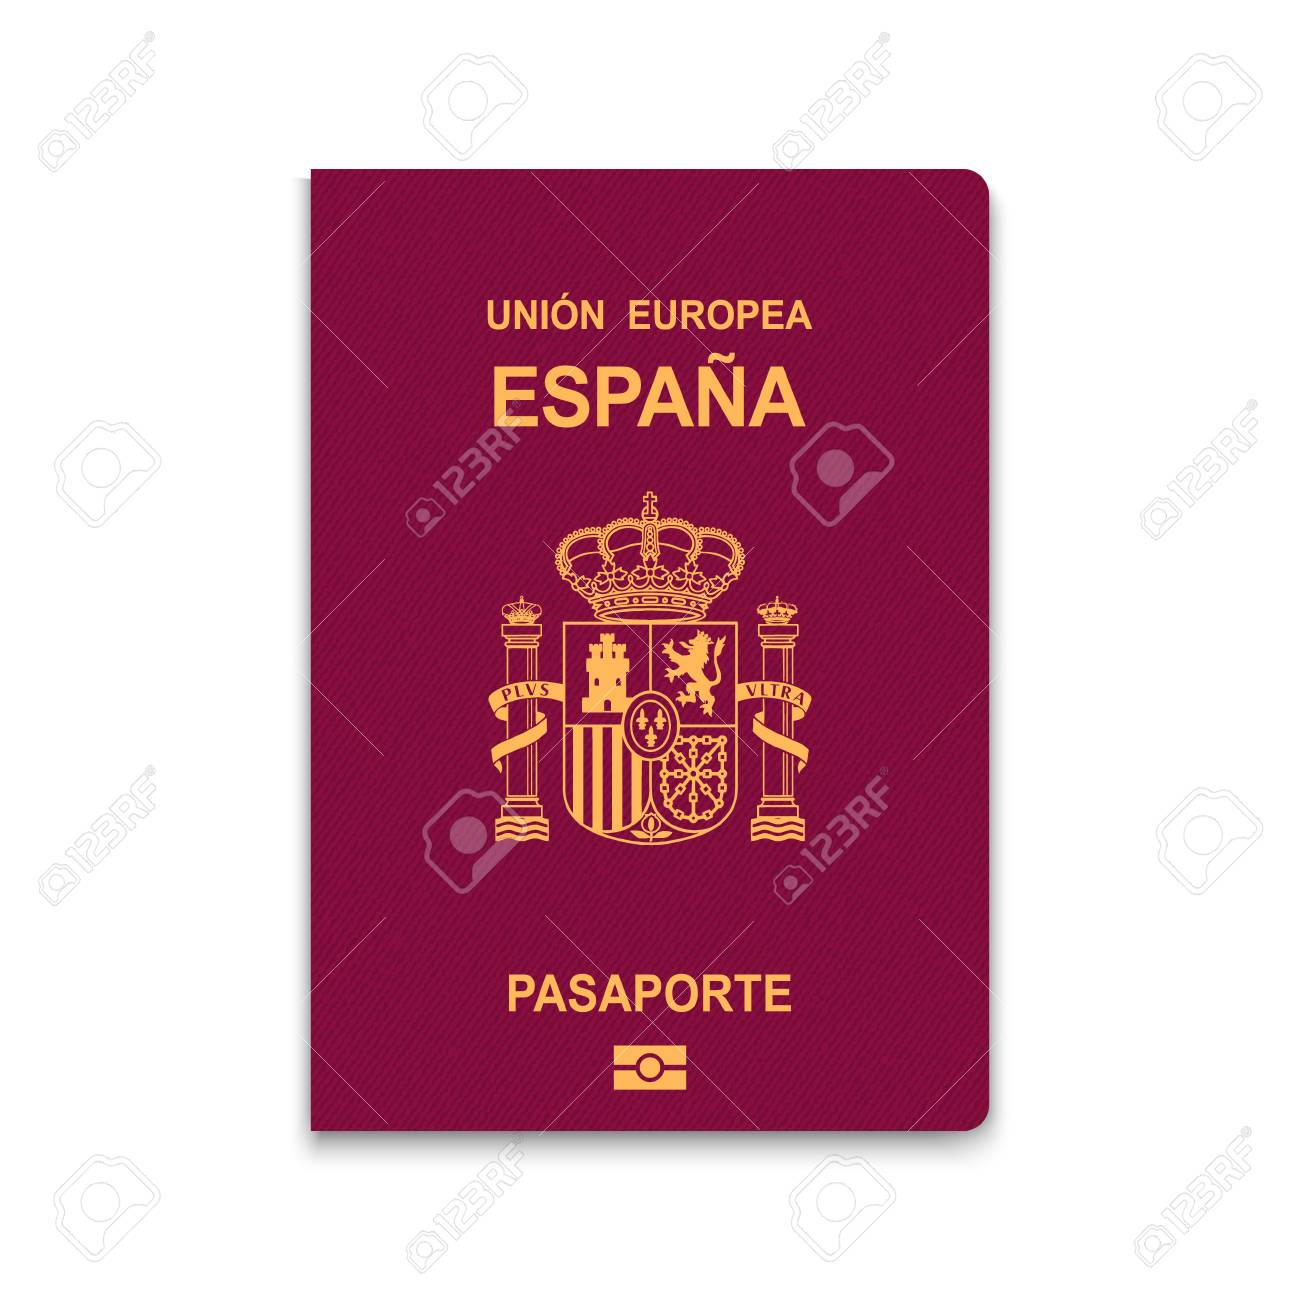 Royalty Free And Image Stock Vector Spain Vectors Cliparts Illustration Of Illustration 97221741 Passport